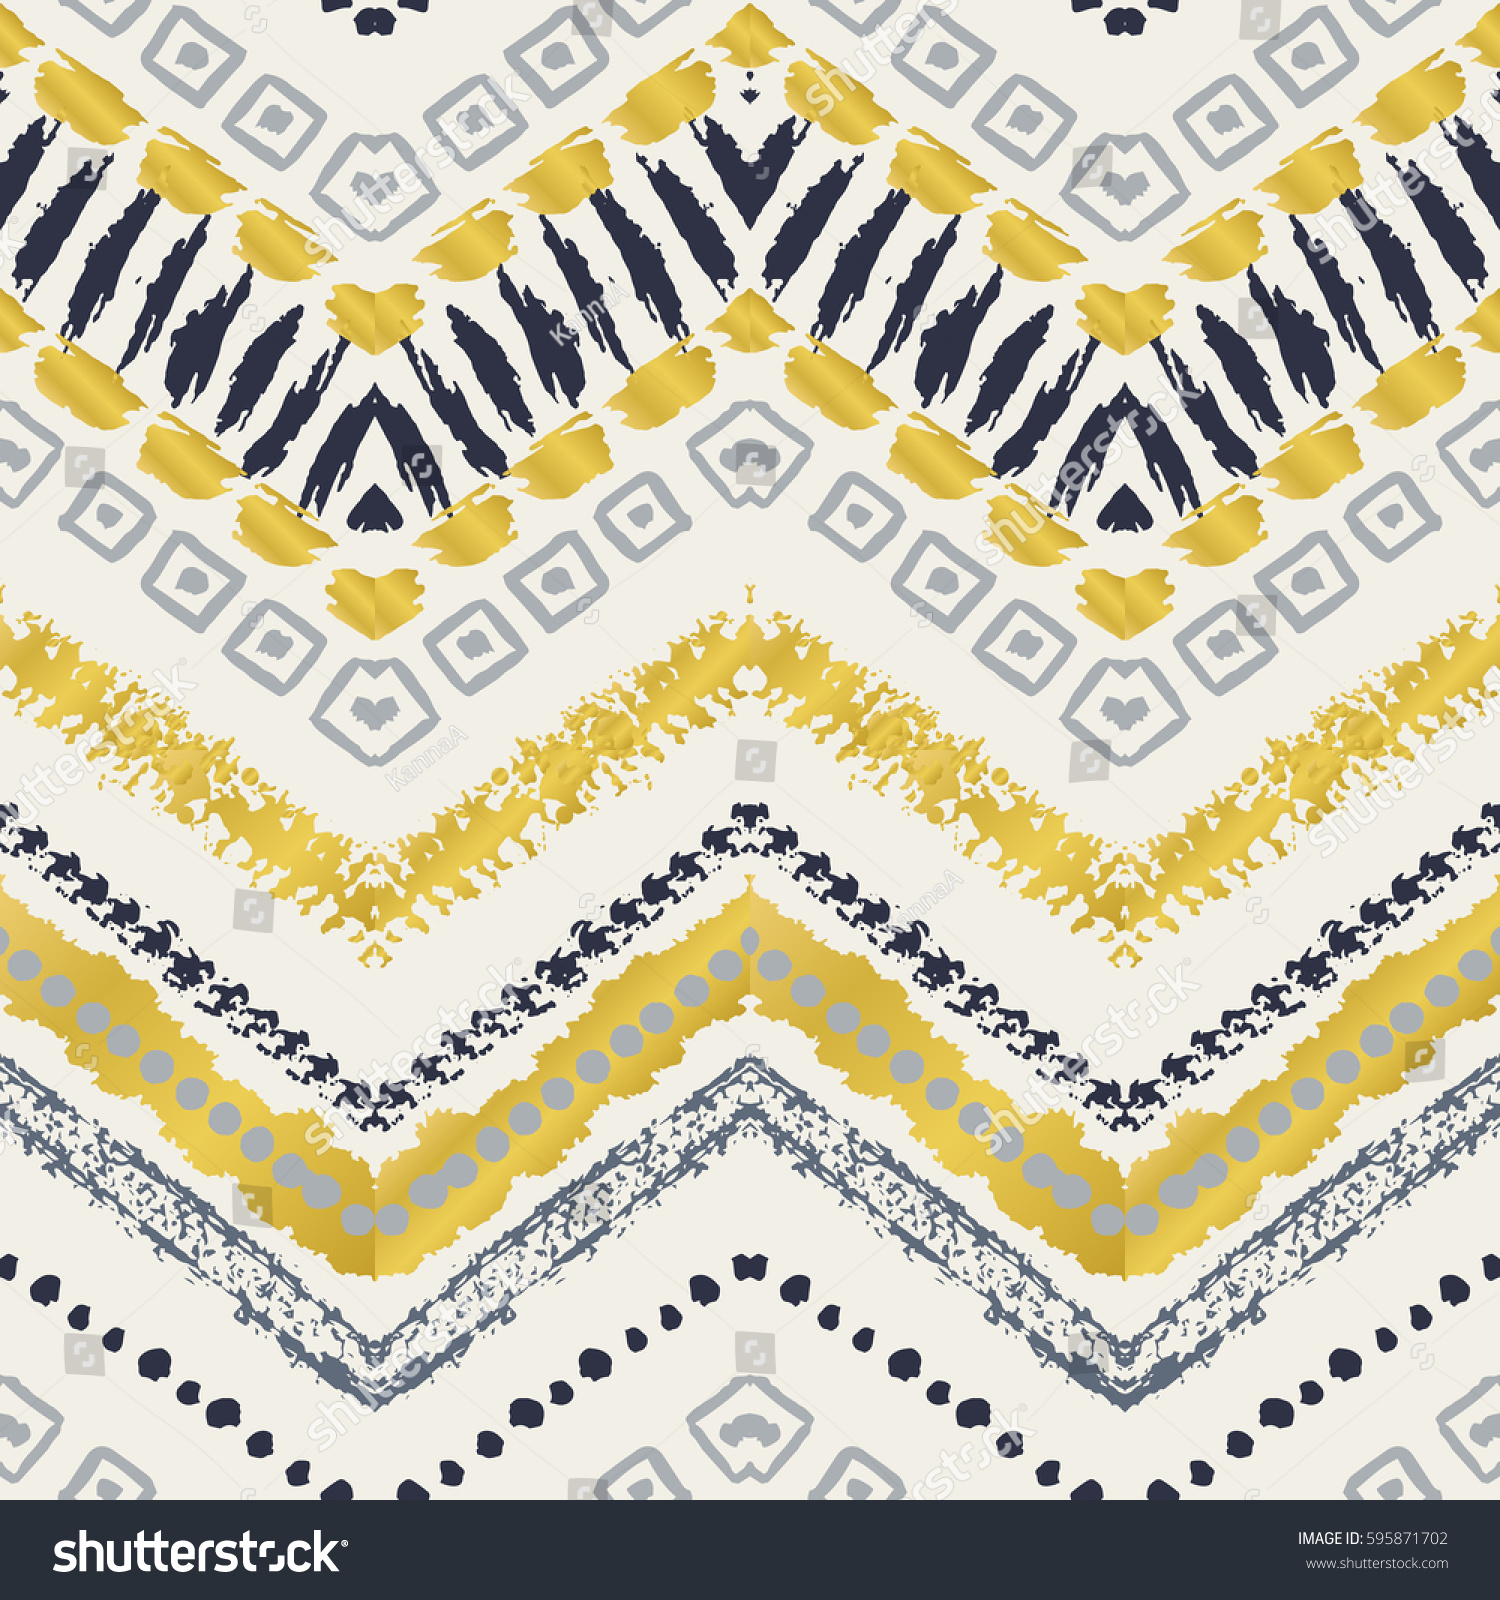 Tribal ethnic seamless pattern Vector illustration for fashion design Aztec watercolor background Cute